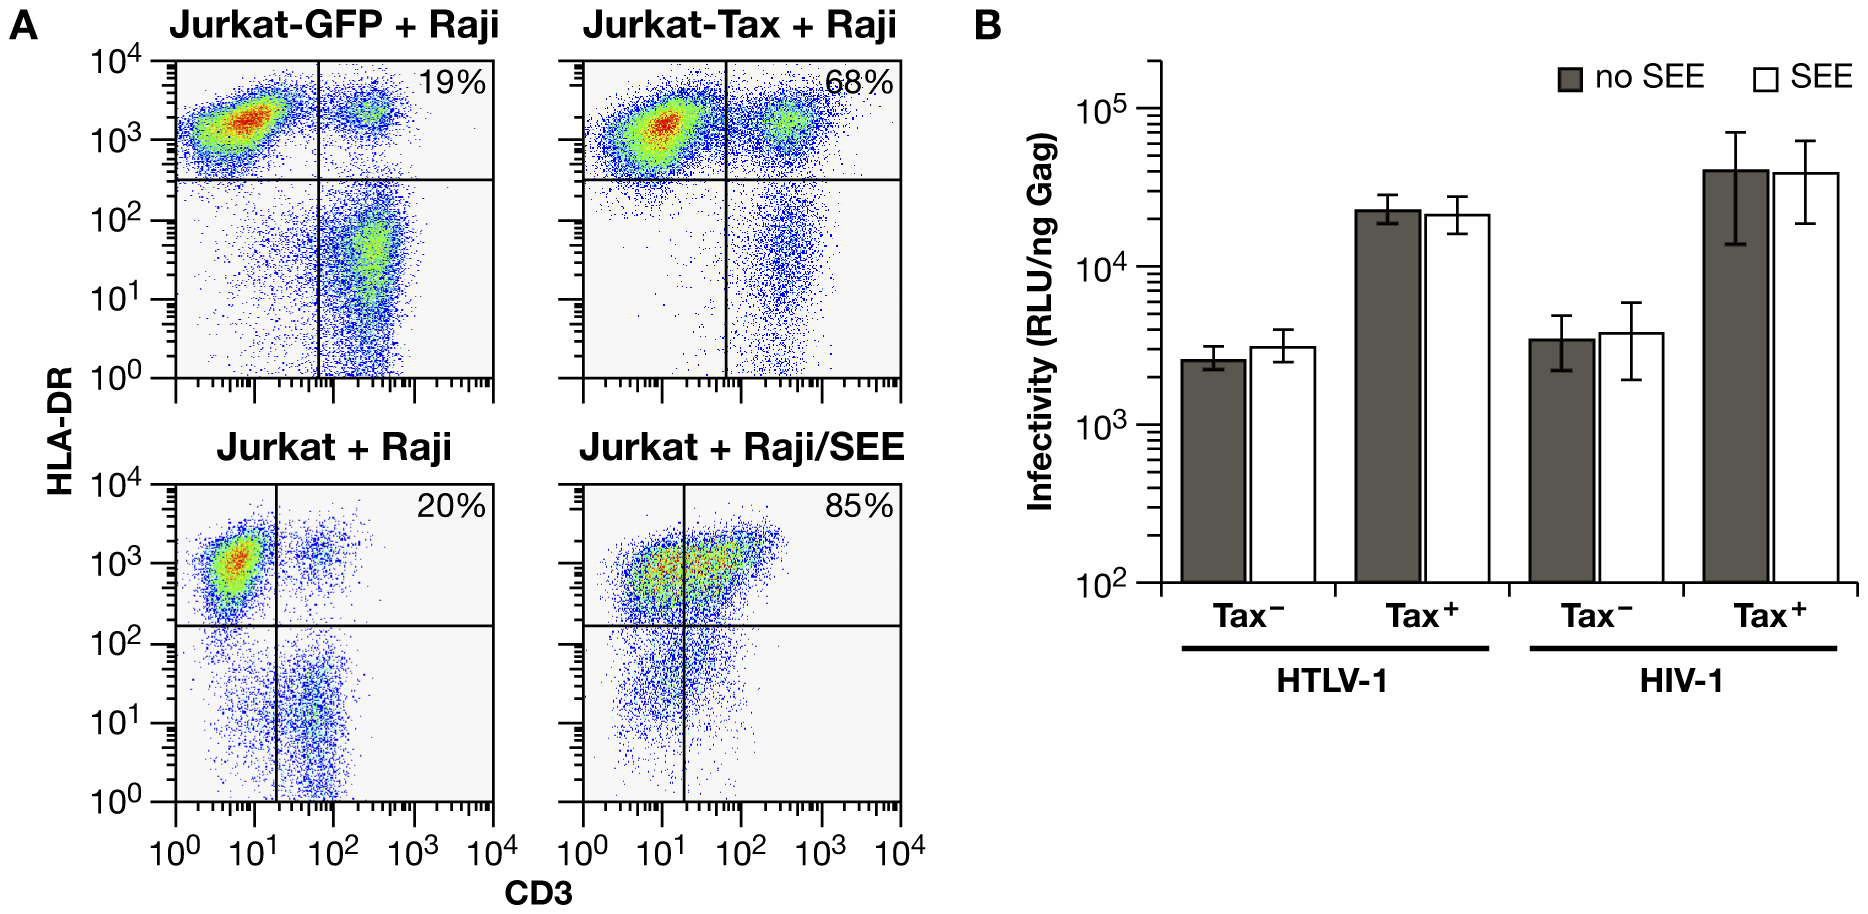 A superantigen-induced immunological synapse does not enhance infection with HIV-1 or HTLV-1 VLPs.